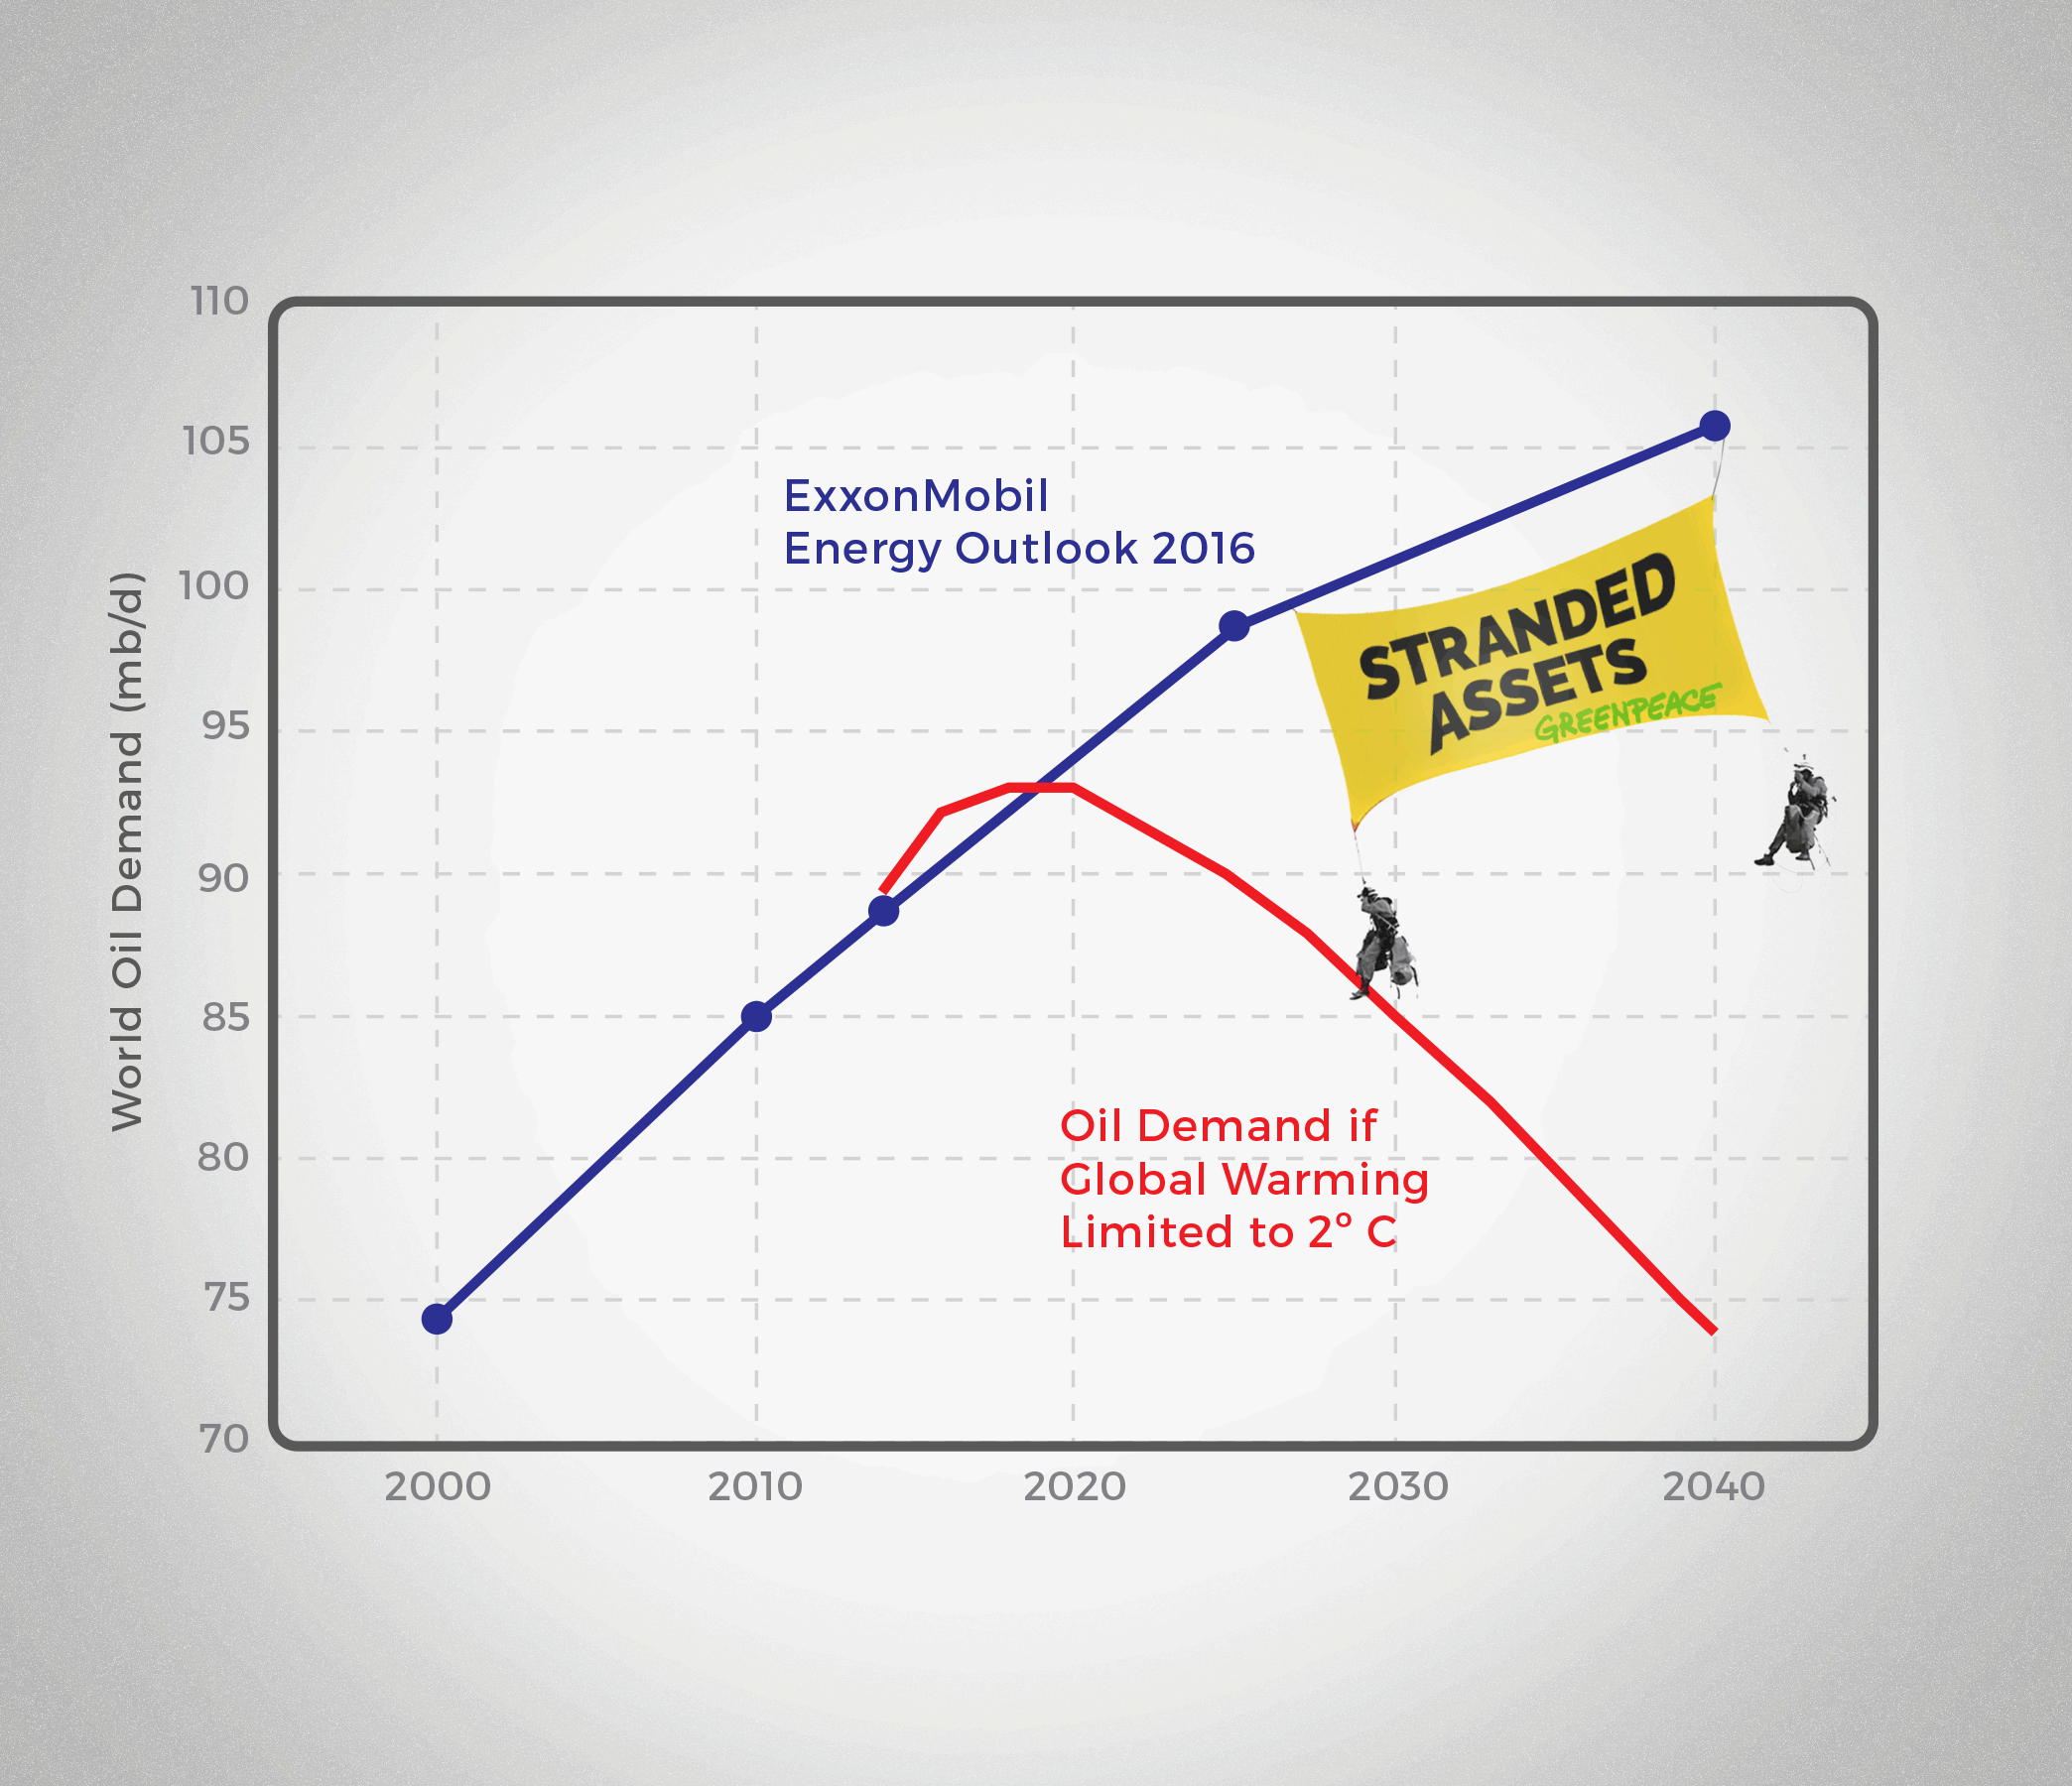 Chart comparing the IEA's 450 scenario (red line) with ExxonMobil's estimate (blue line) for world oil demand from 2014 to 2040 (in units of millions of barrels of oil per day). The IEA 450 scenario gives a 50% chance of limiting global warming to 2 degrees C. Data: IEA World Energy Outlook 2015 (Figure 3.1), ExxonMobil Energy Outlook 2016 (p. 72). Protesters courtesy of the climate justice movement.